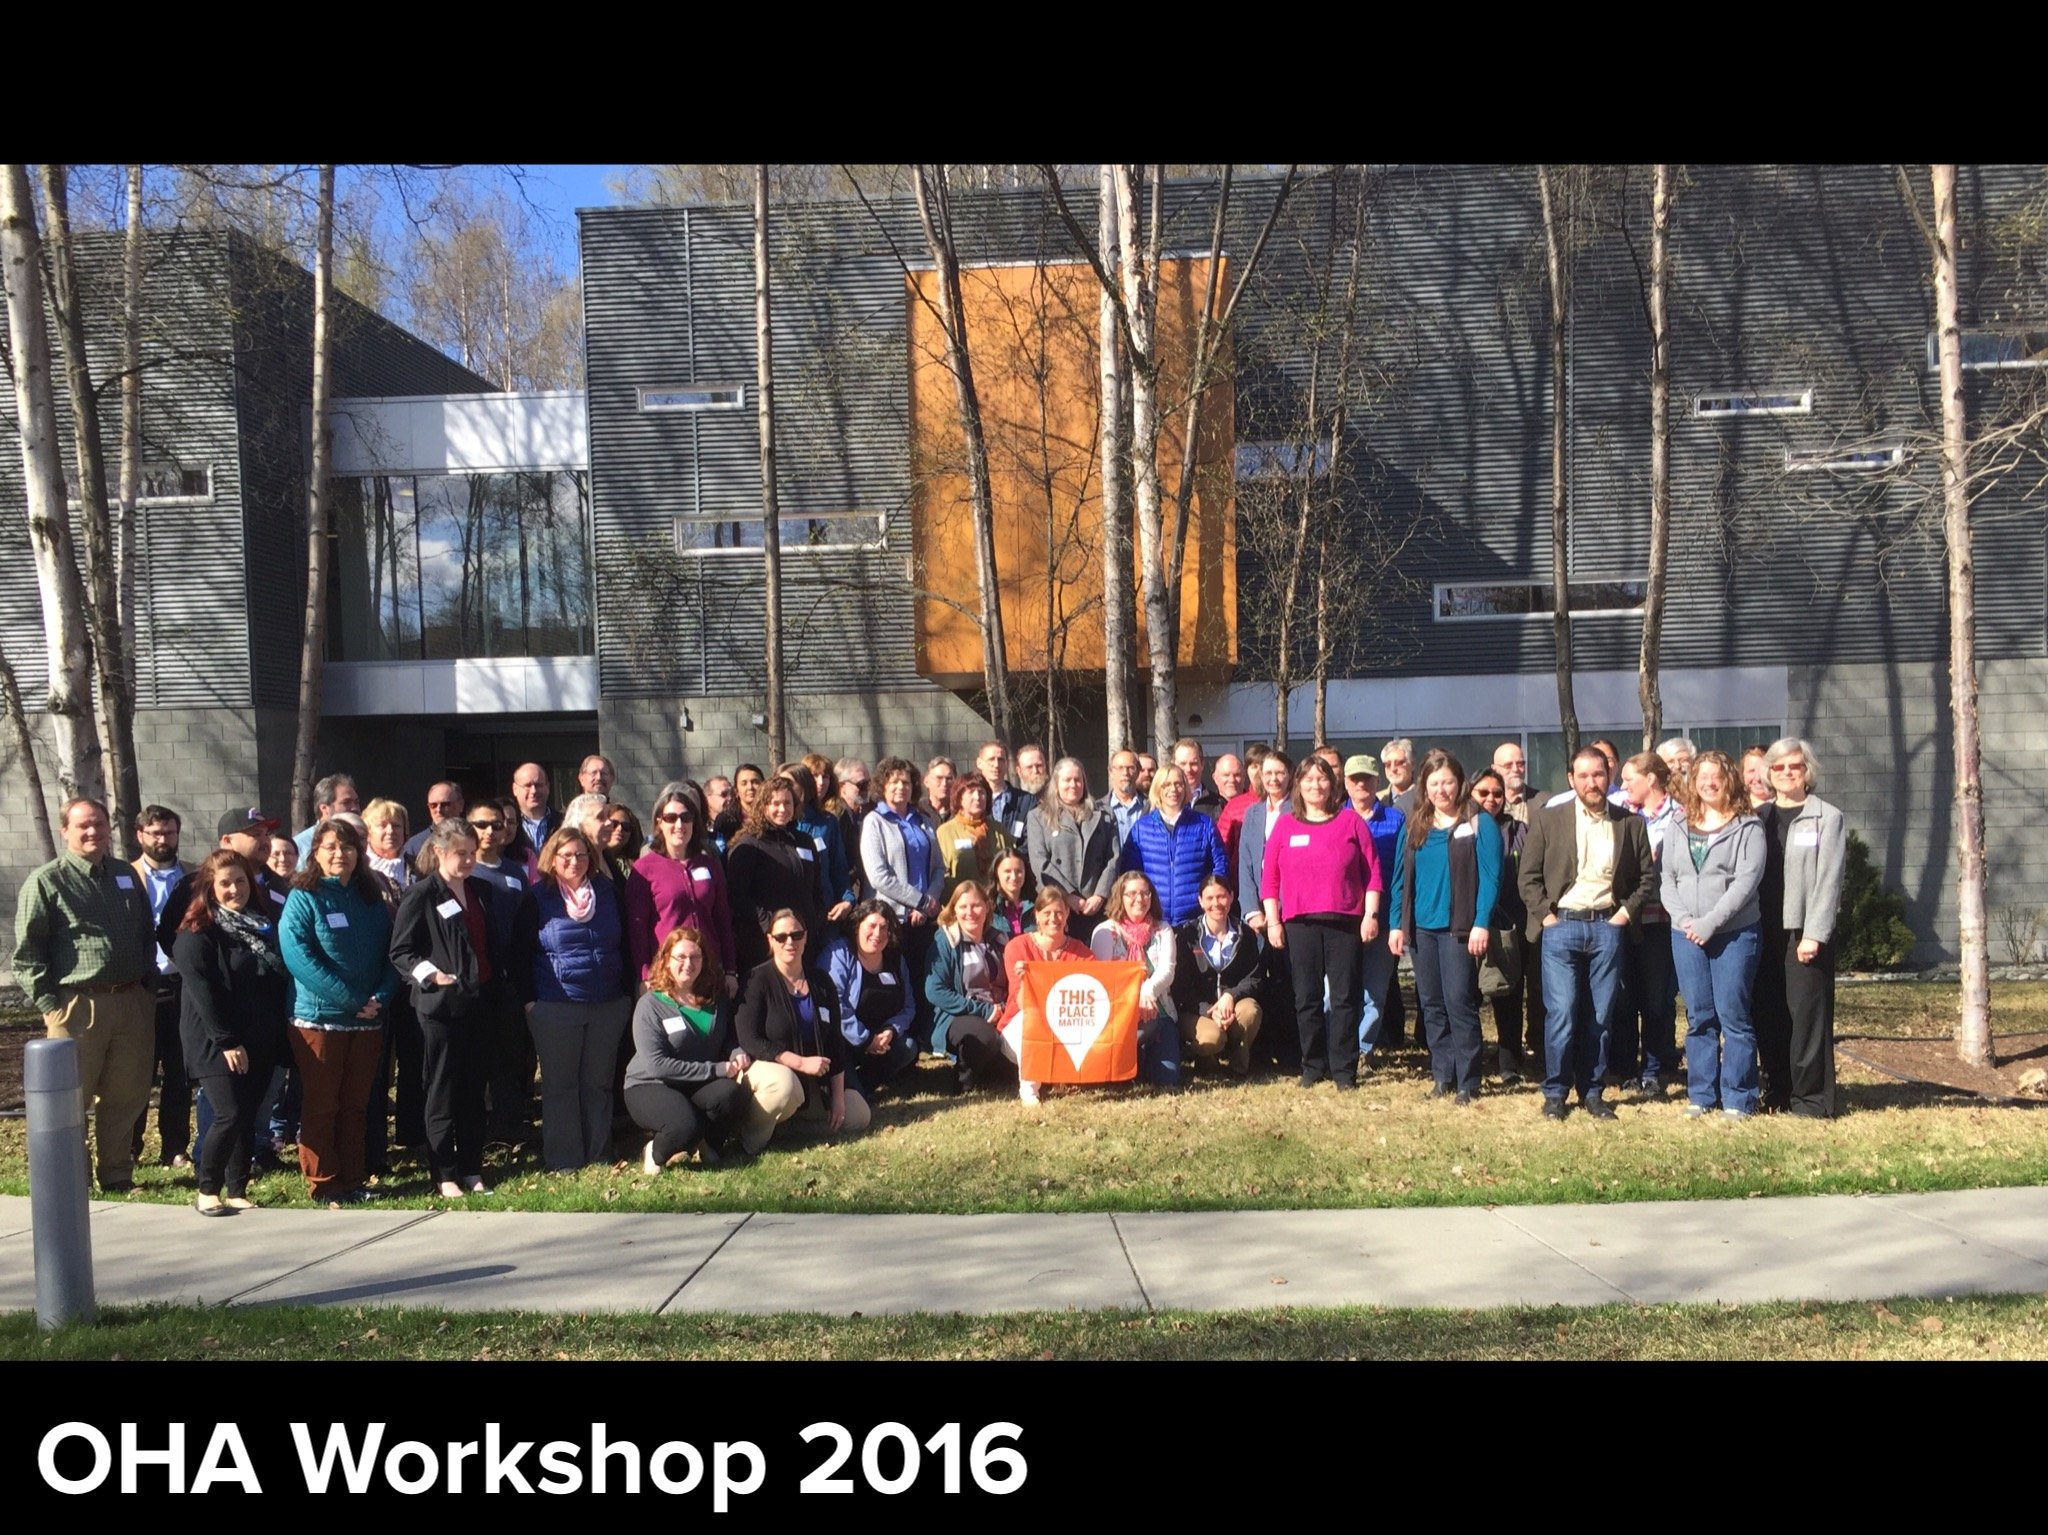 OHA 2016 Workshop